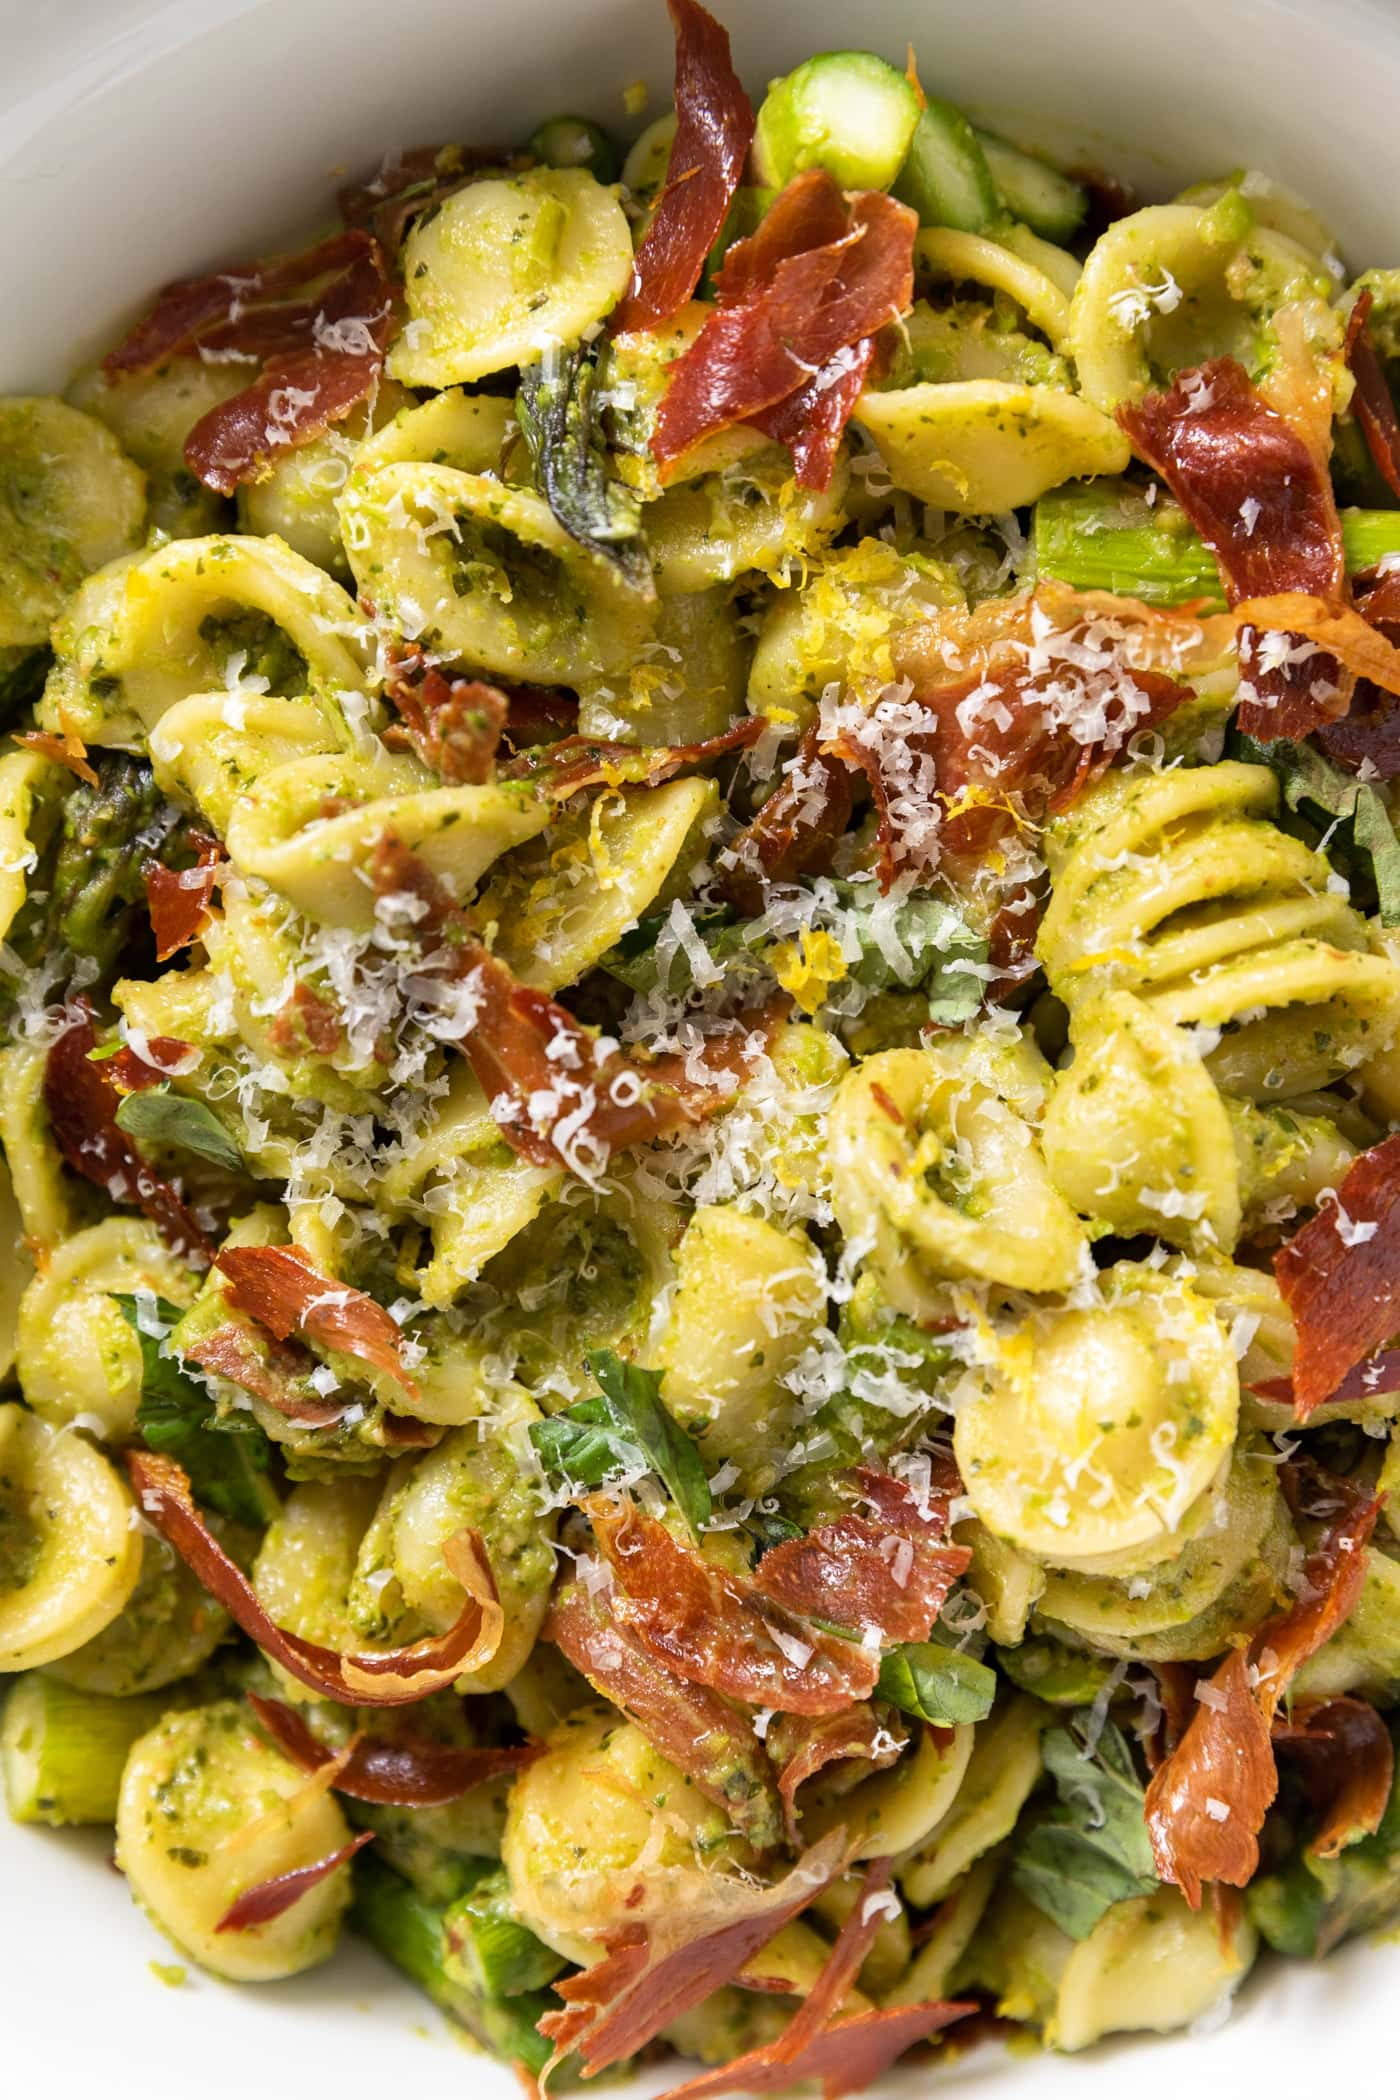 Close up view of pieces of yellow colored pasta mixed with asparagus and pieces of crispy prosciutto all in large white bowl